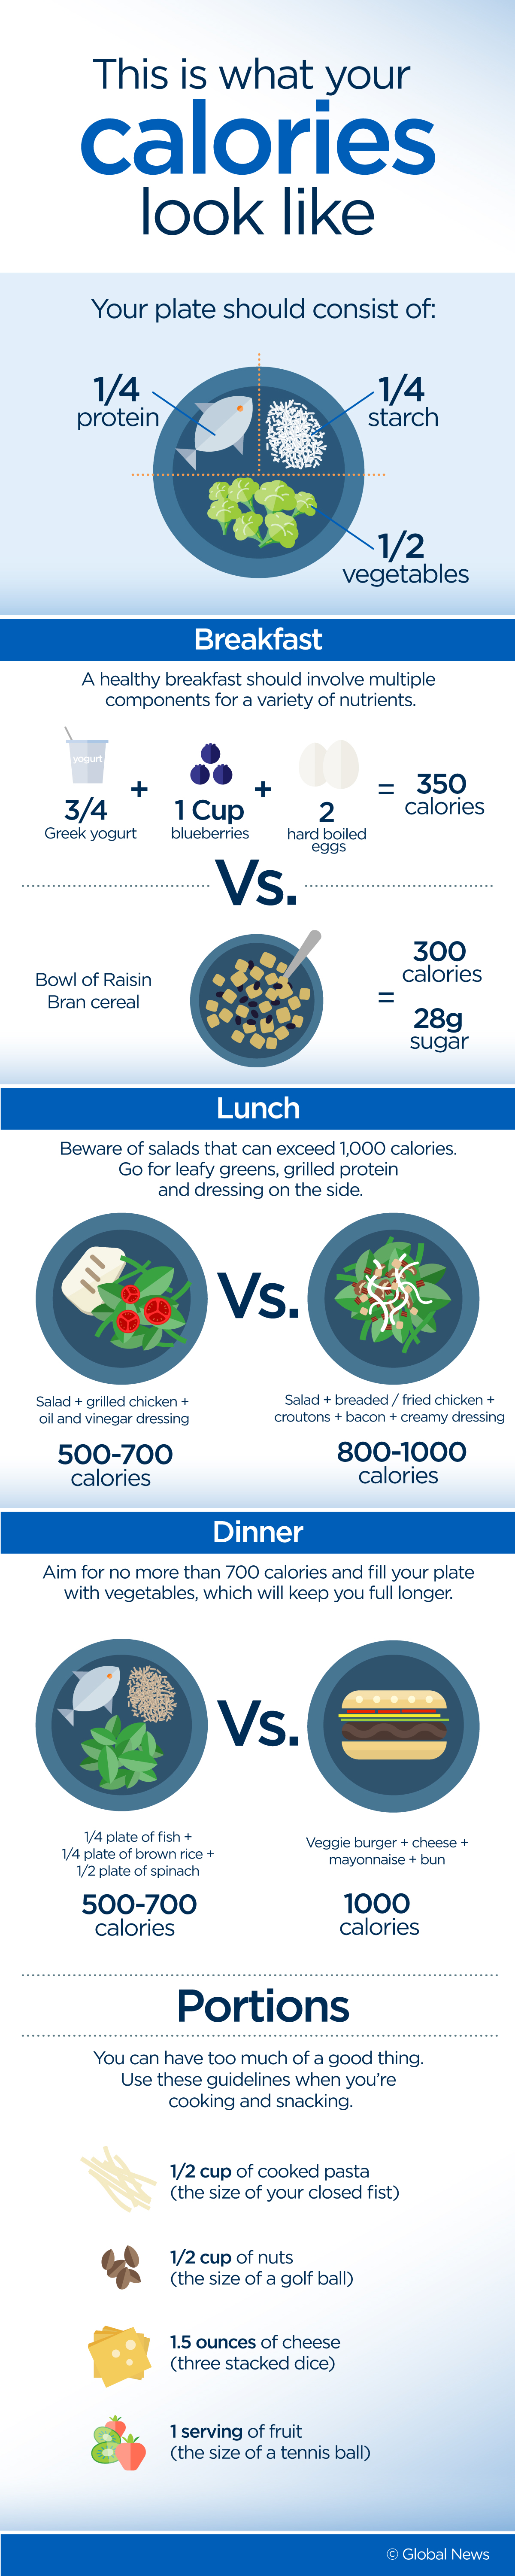 This Is What Your Breakfast Lunch And Dinner Calories Actually Look Like National Globalnews Ca